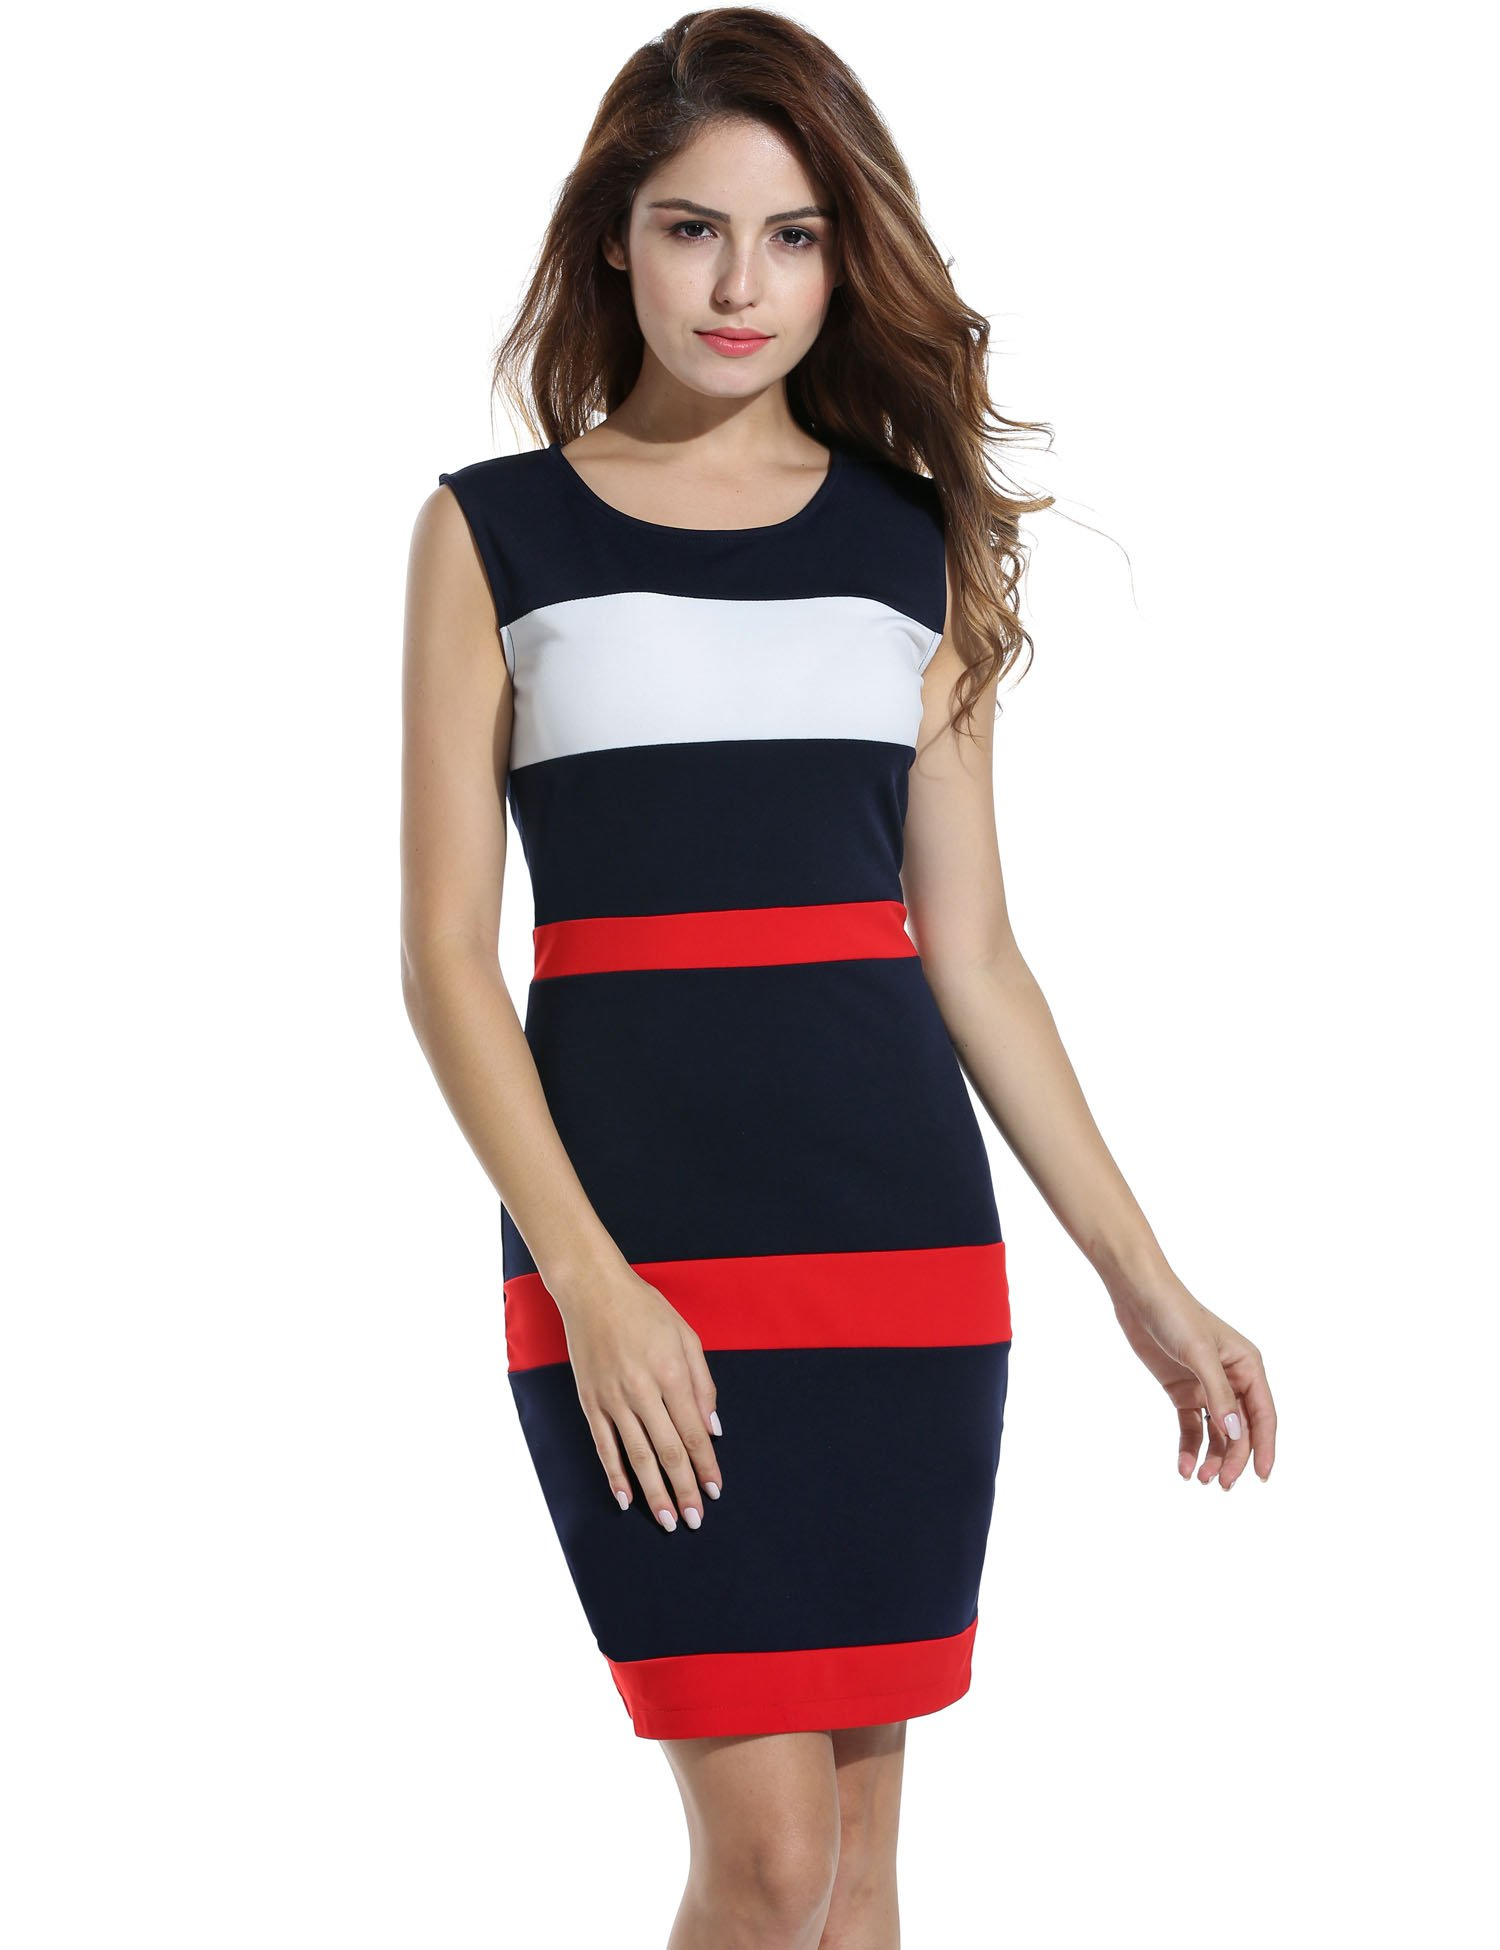 ANGVNS Women\'s Fashion Slim O Neck Colorblock Stripe Pencil Dress